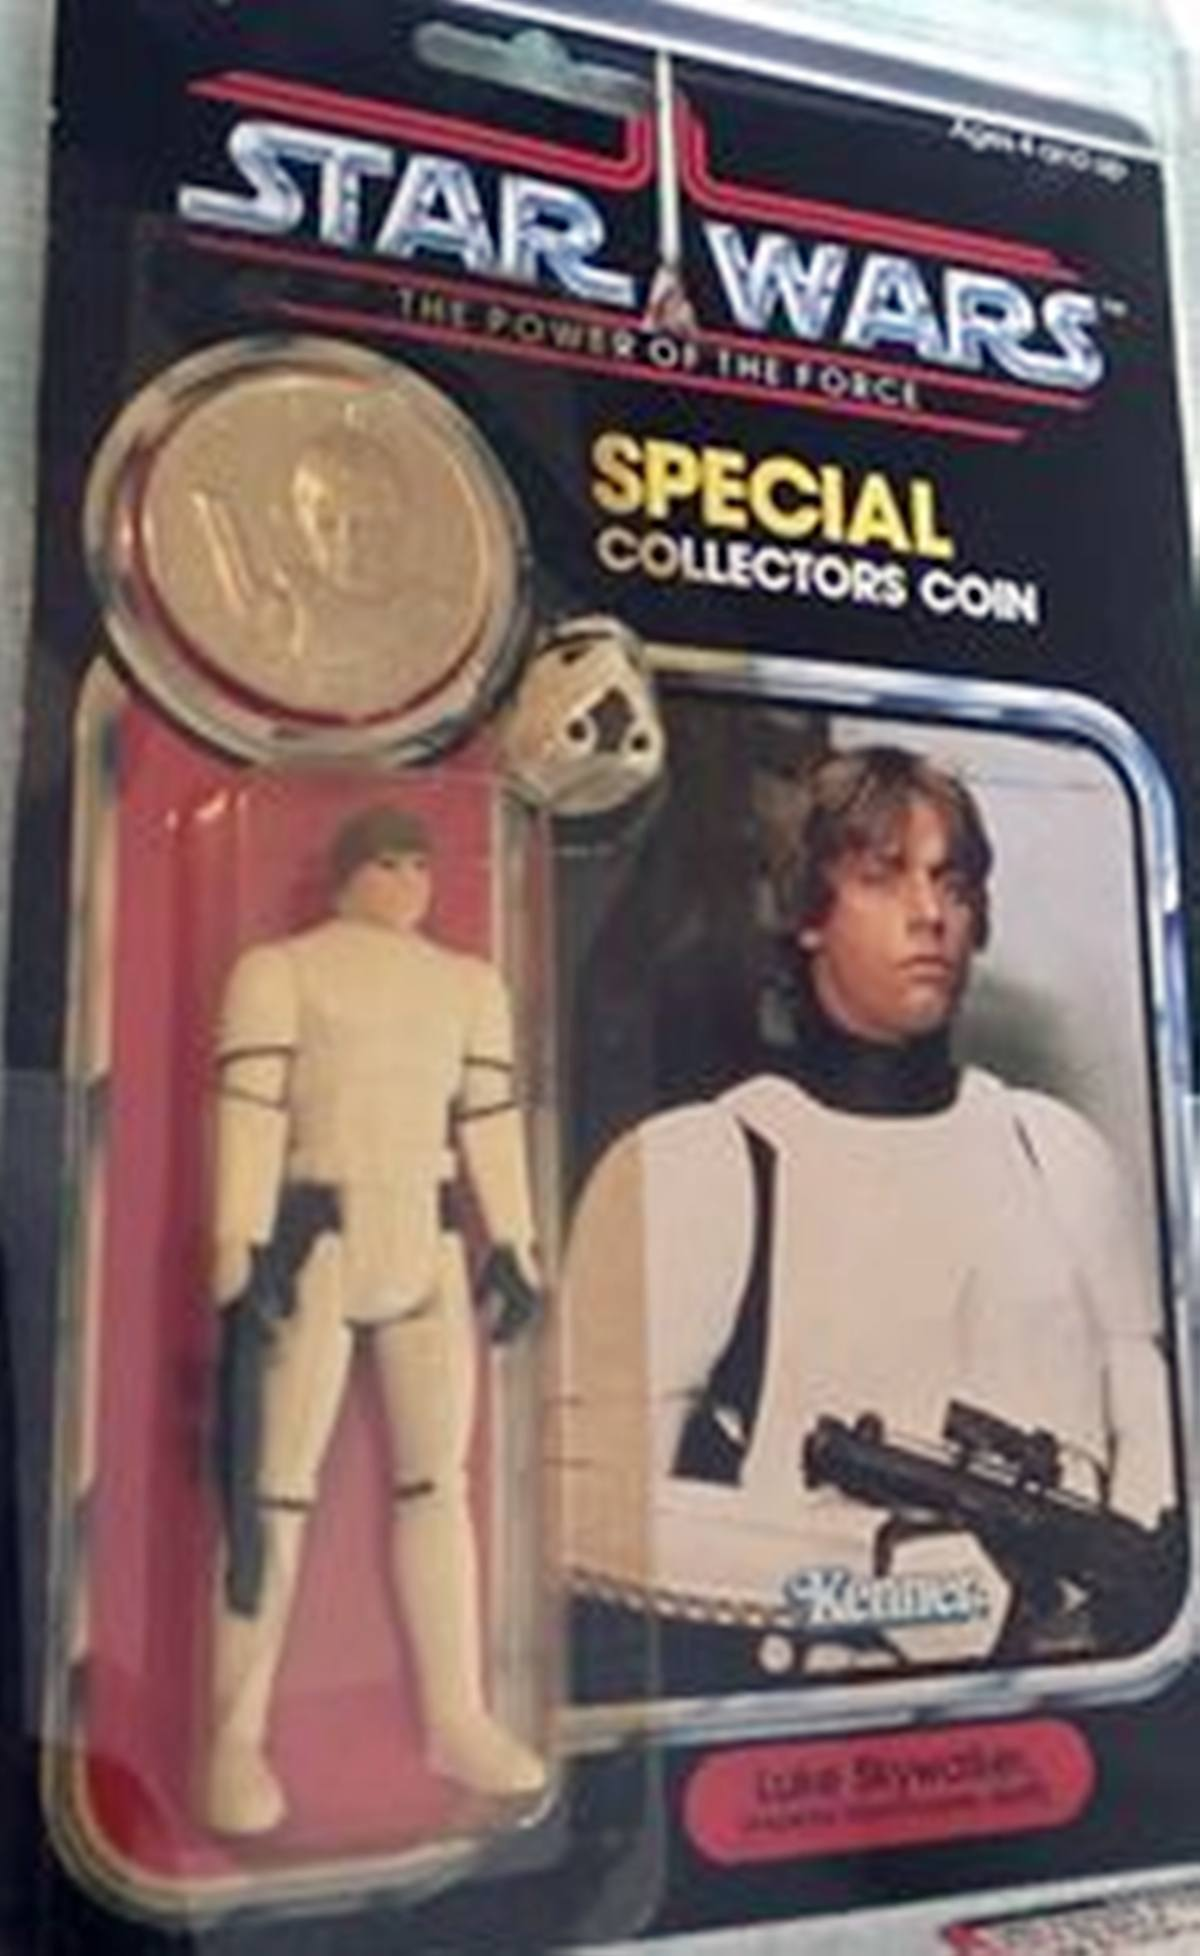 7 4 10 Star Wars Toys That Will Earn You A Fortune!